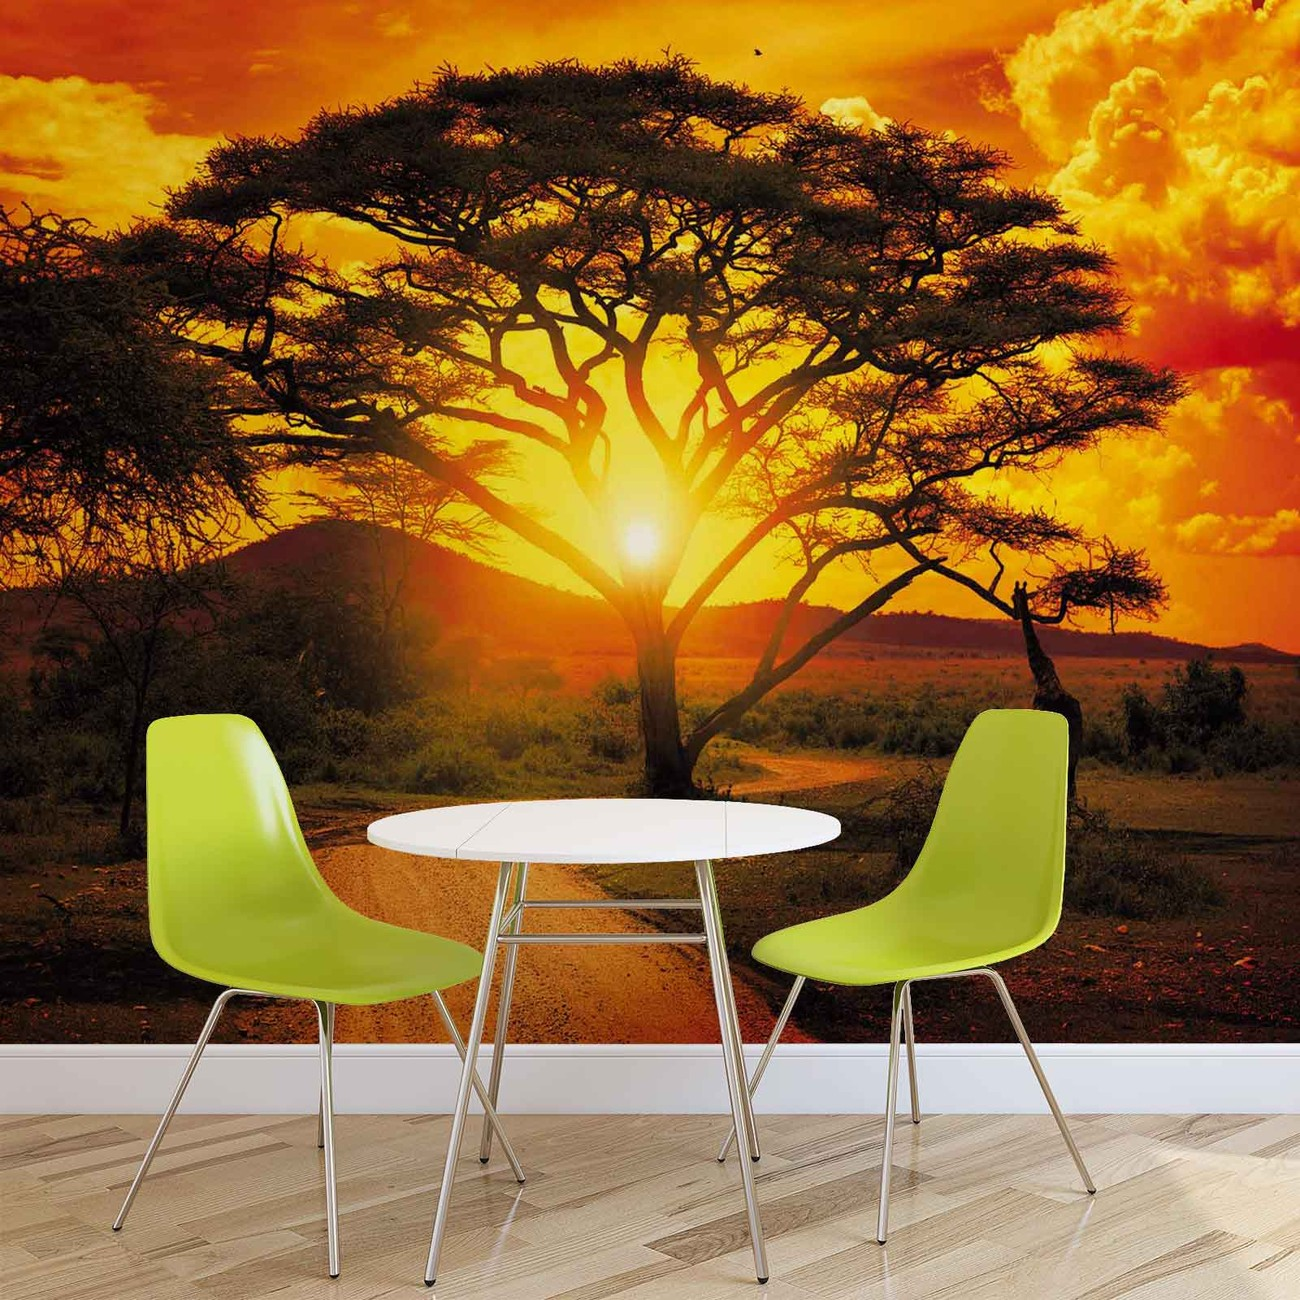 Sunset africa nature tree wall paper mural buy at for African sunset wall mural